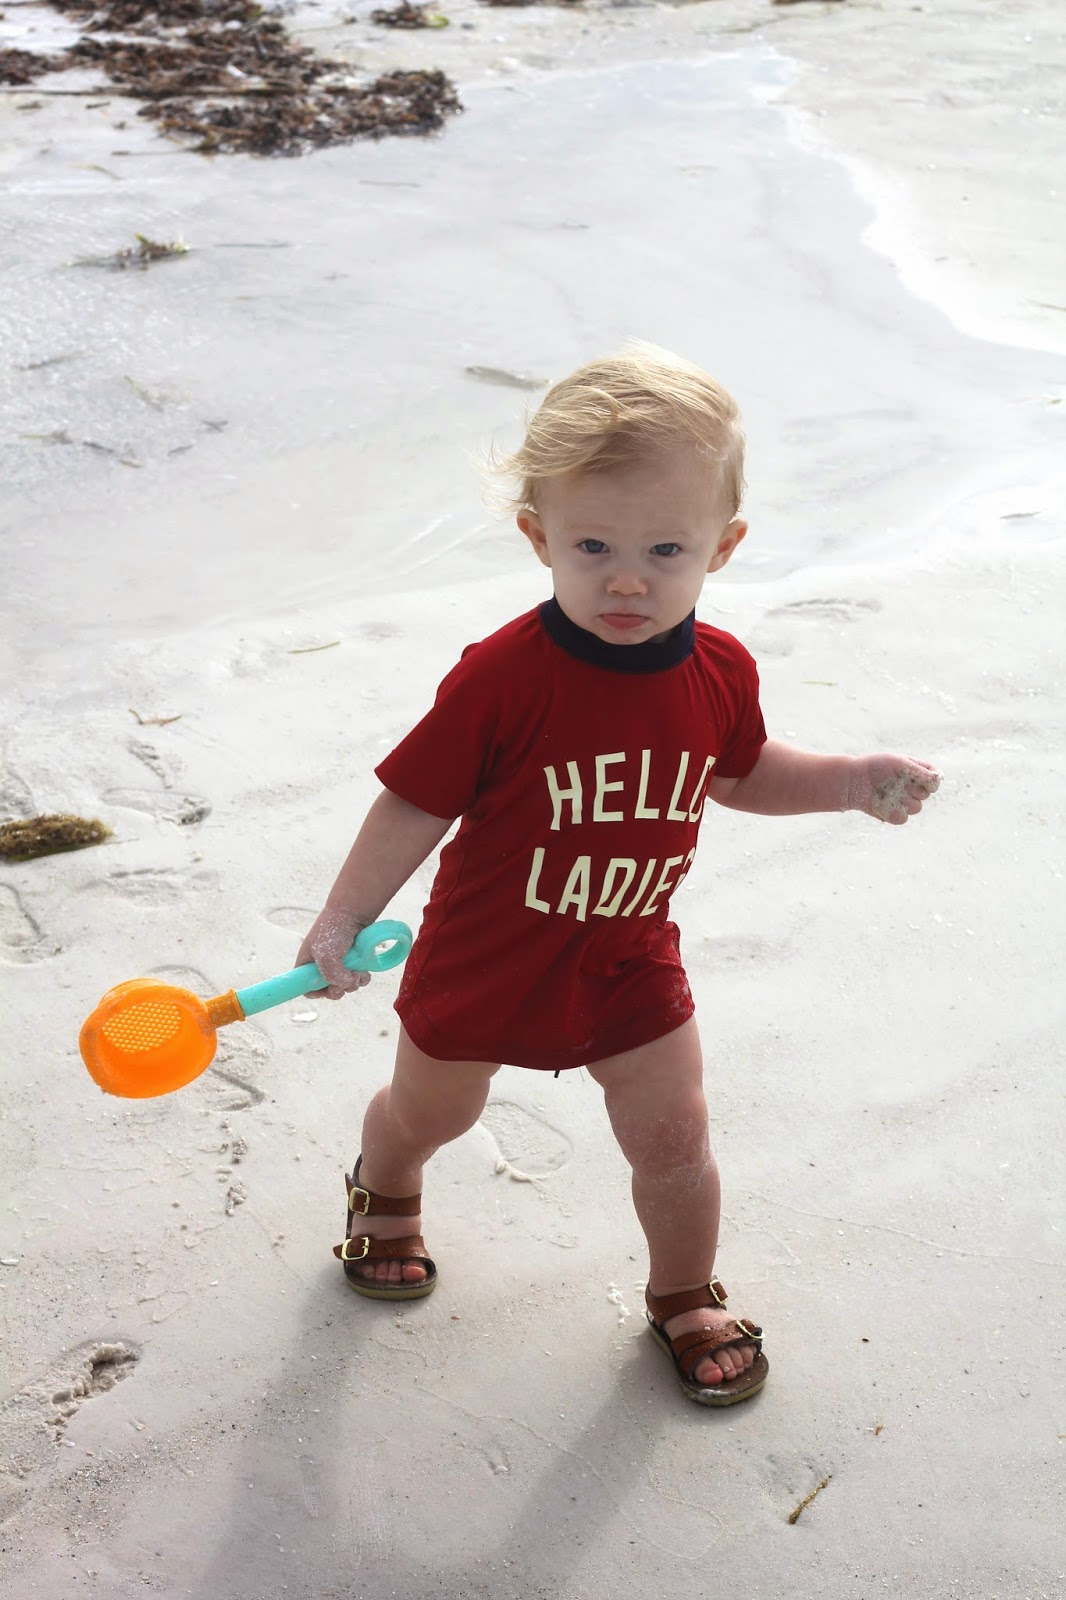 b37c646afa5d0a Beach Baby    Tuck at 15 months - Sarah Tucker